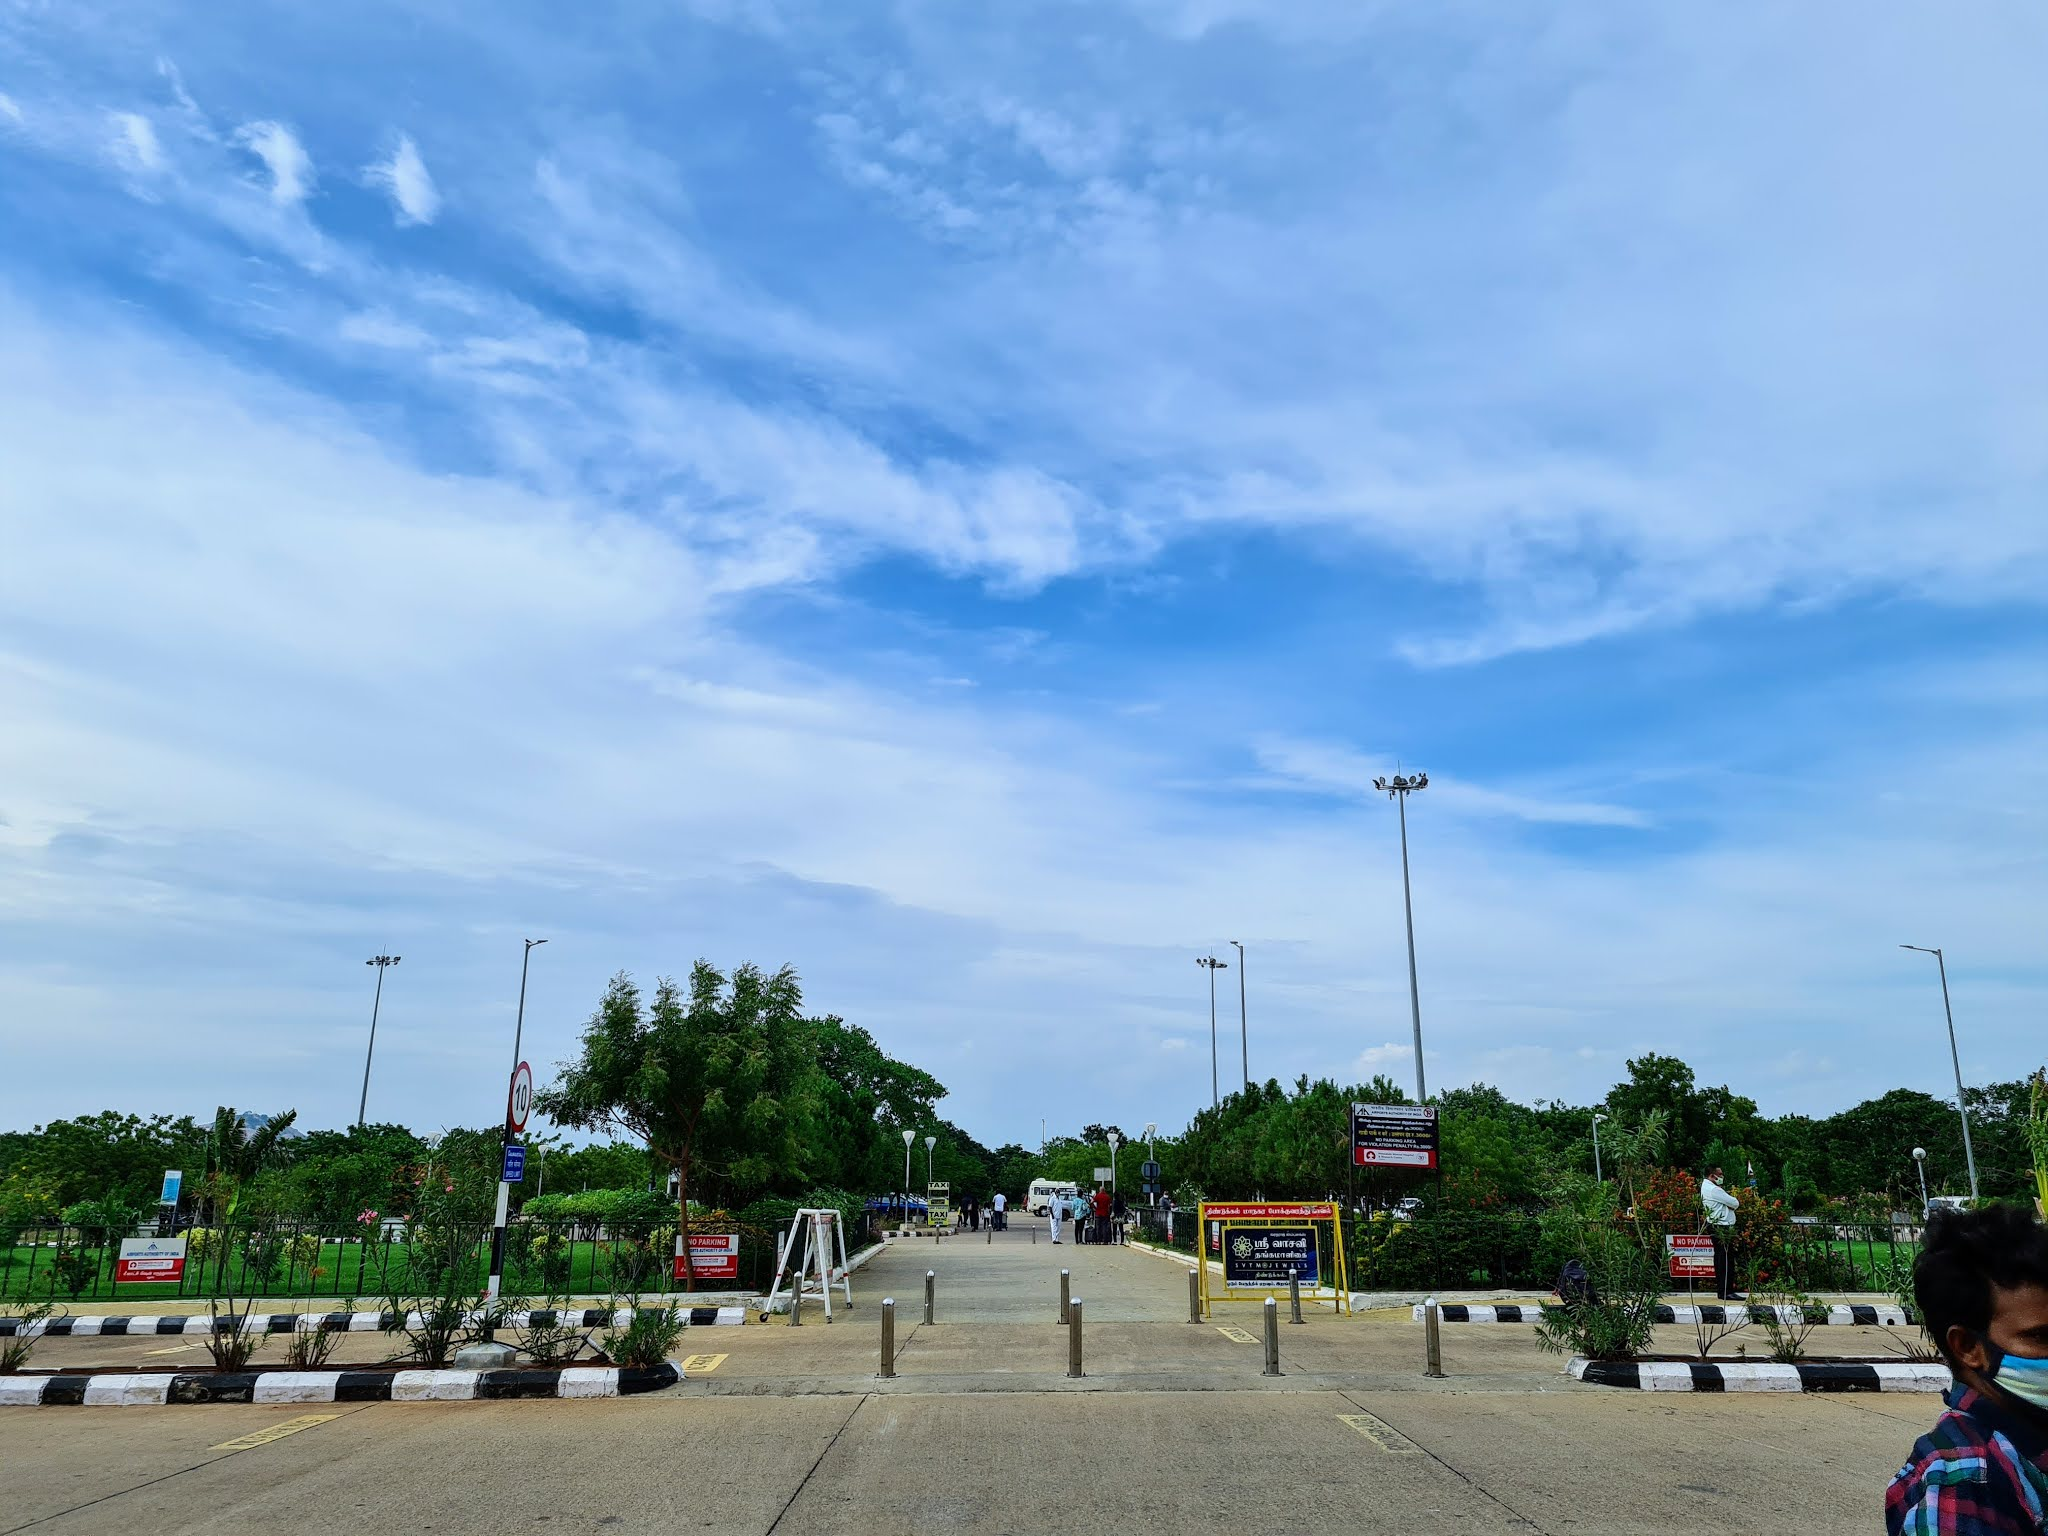 Madurai Airport from outside